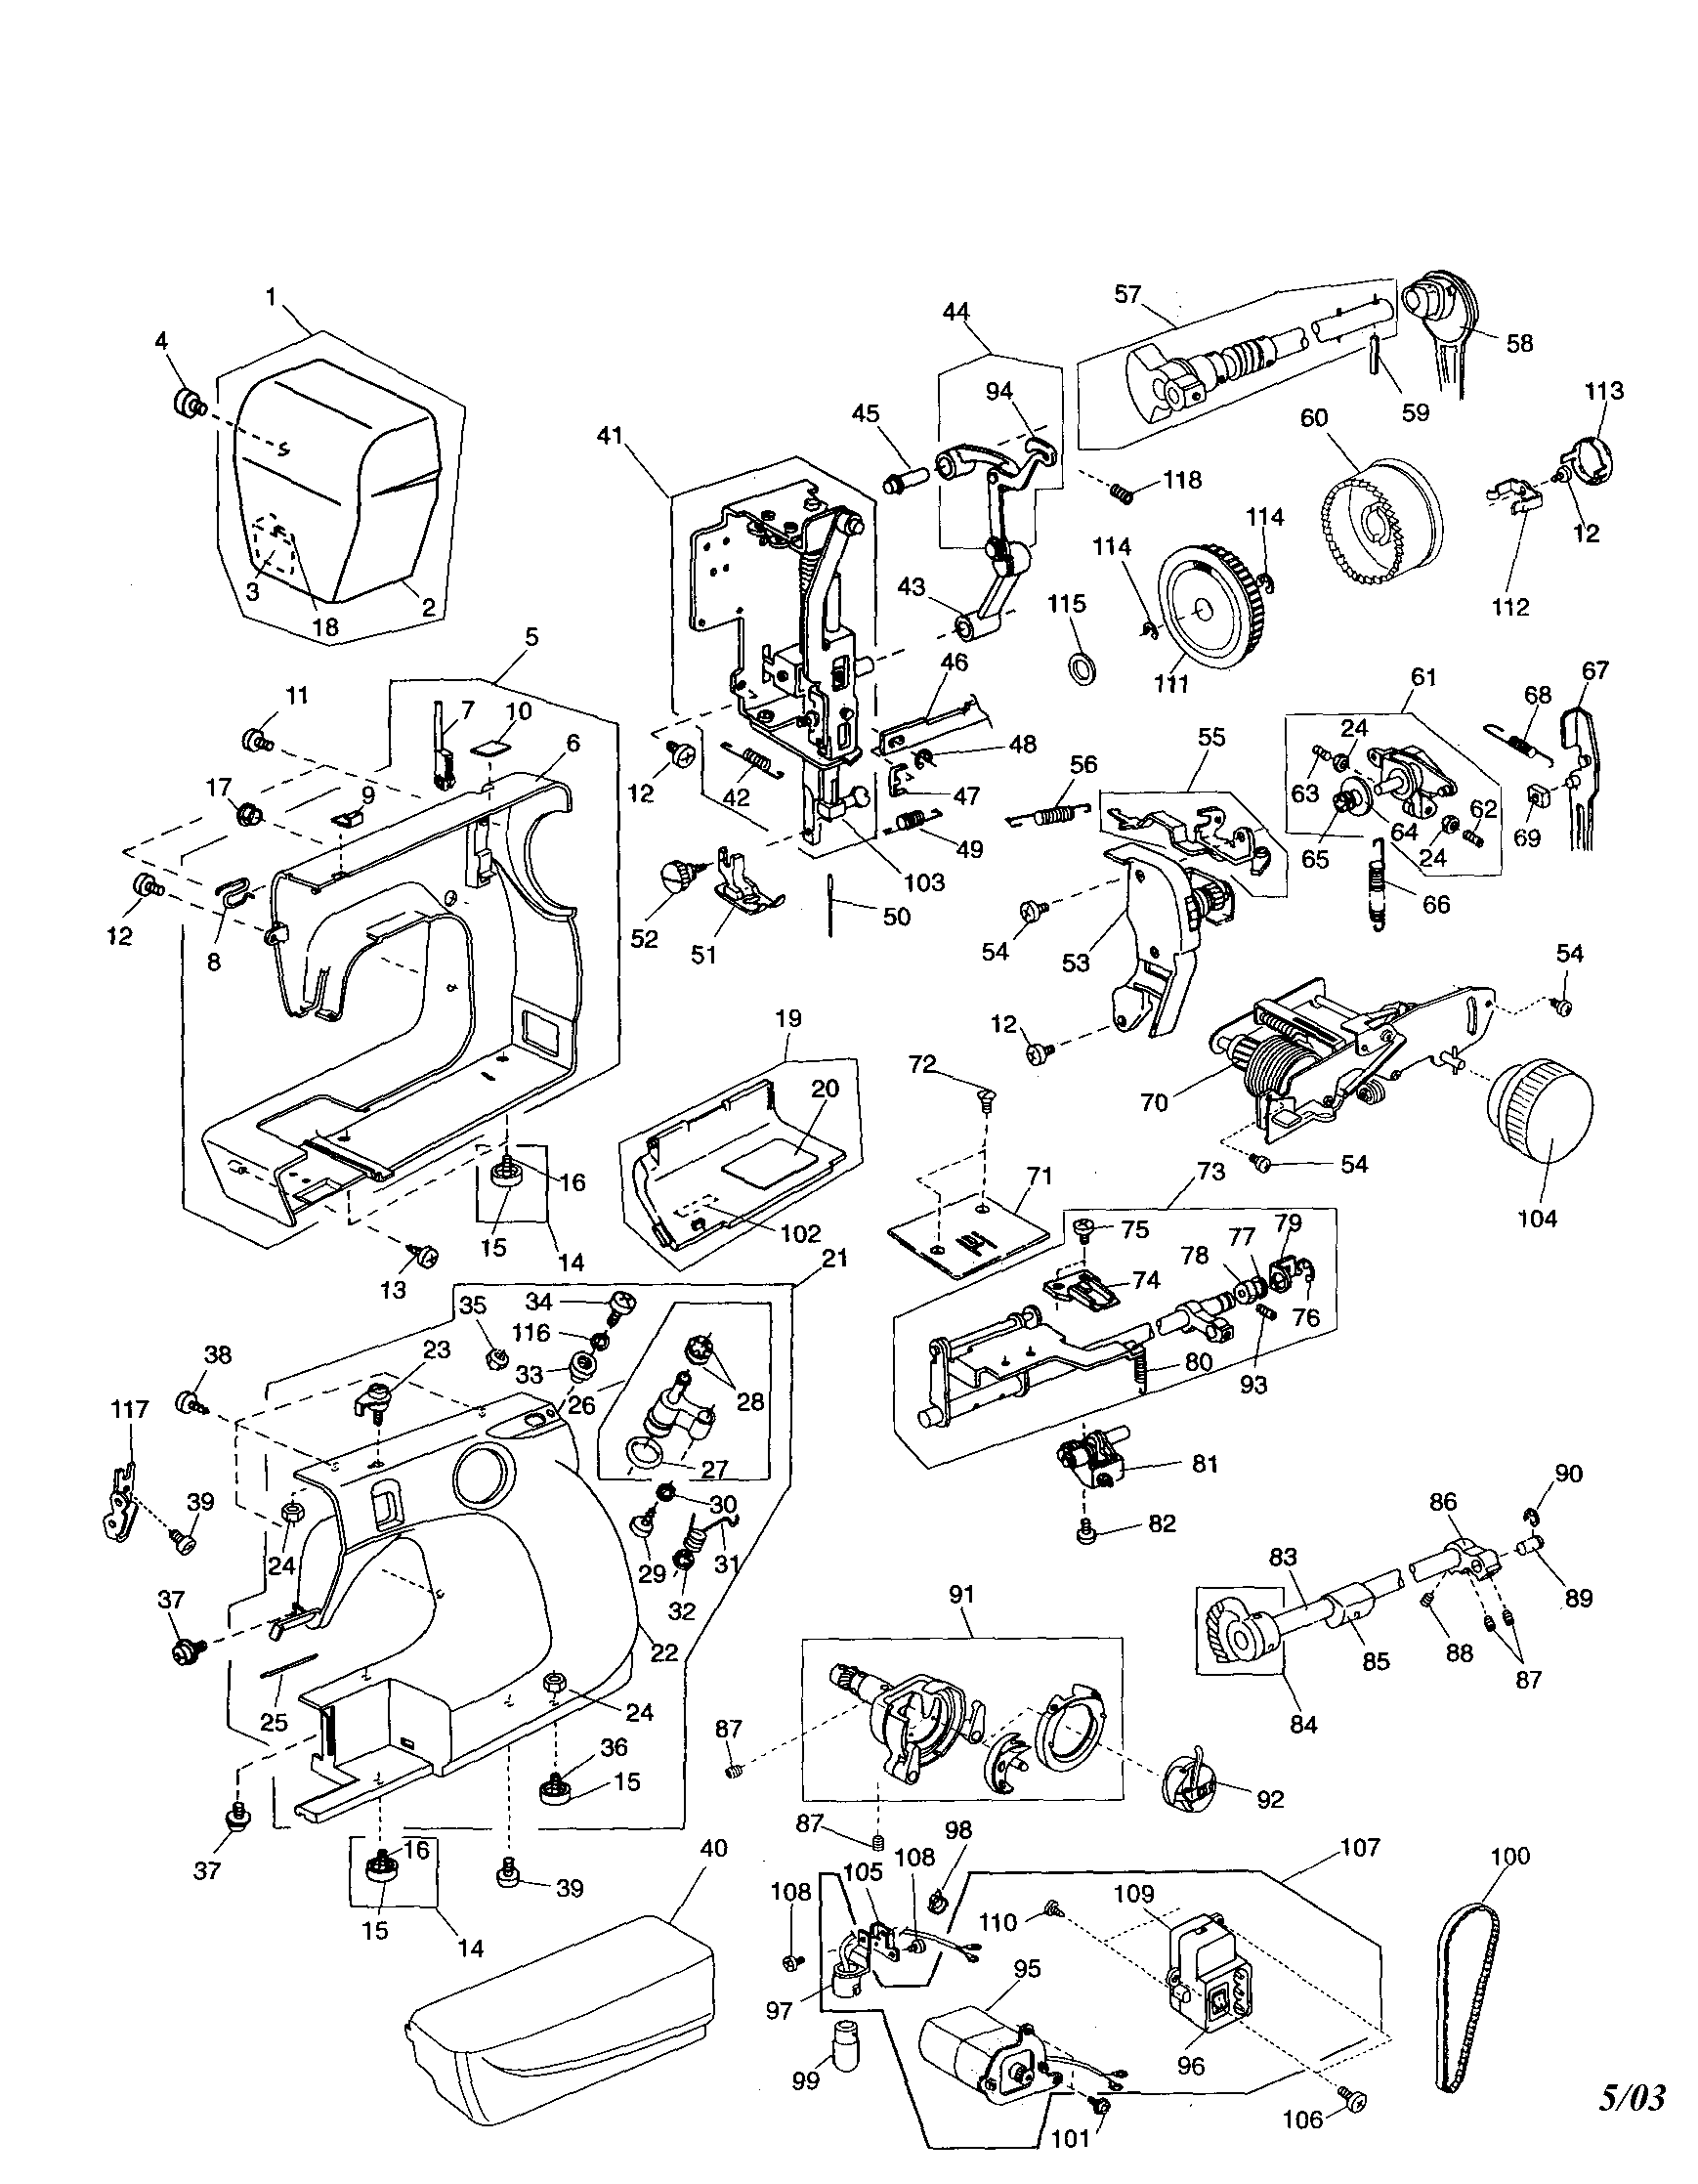 Kenmore Sewing Machine Model 38511206300 Sewing Machine Parts Diagram